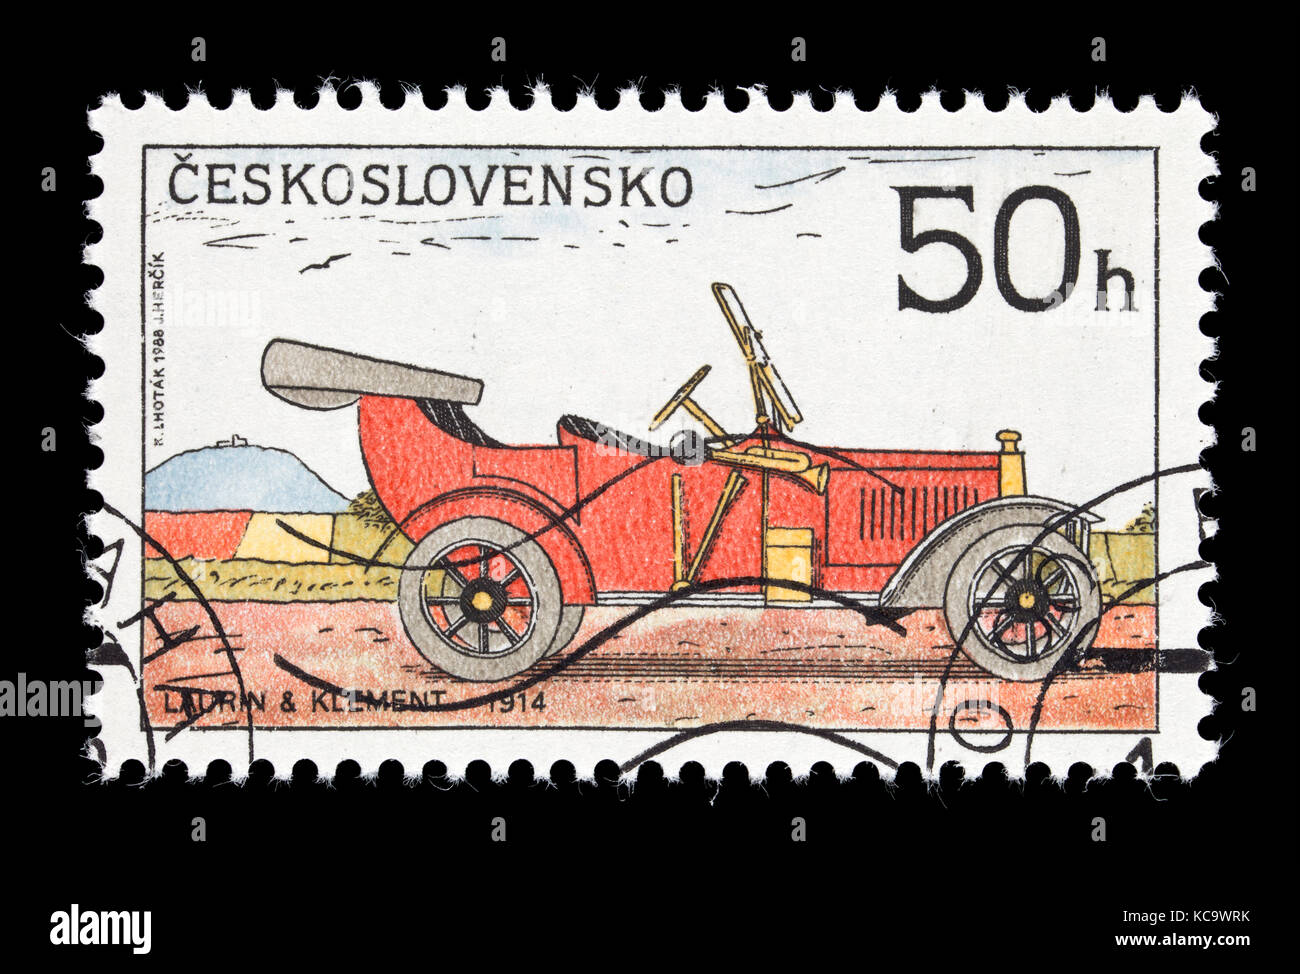 Postage stamp from Czechoslovakia depicting  a 1914 Laurin and Klement classic automobile. - Stock Image